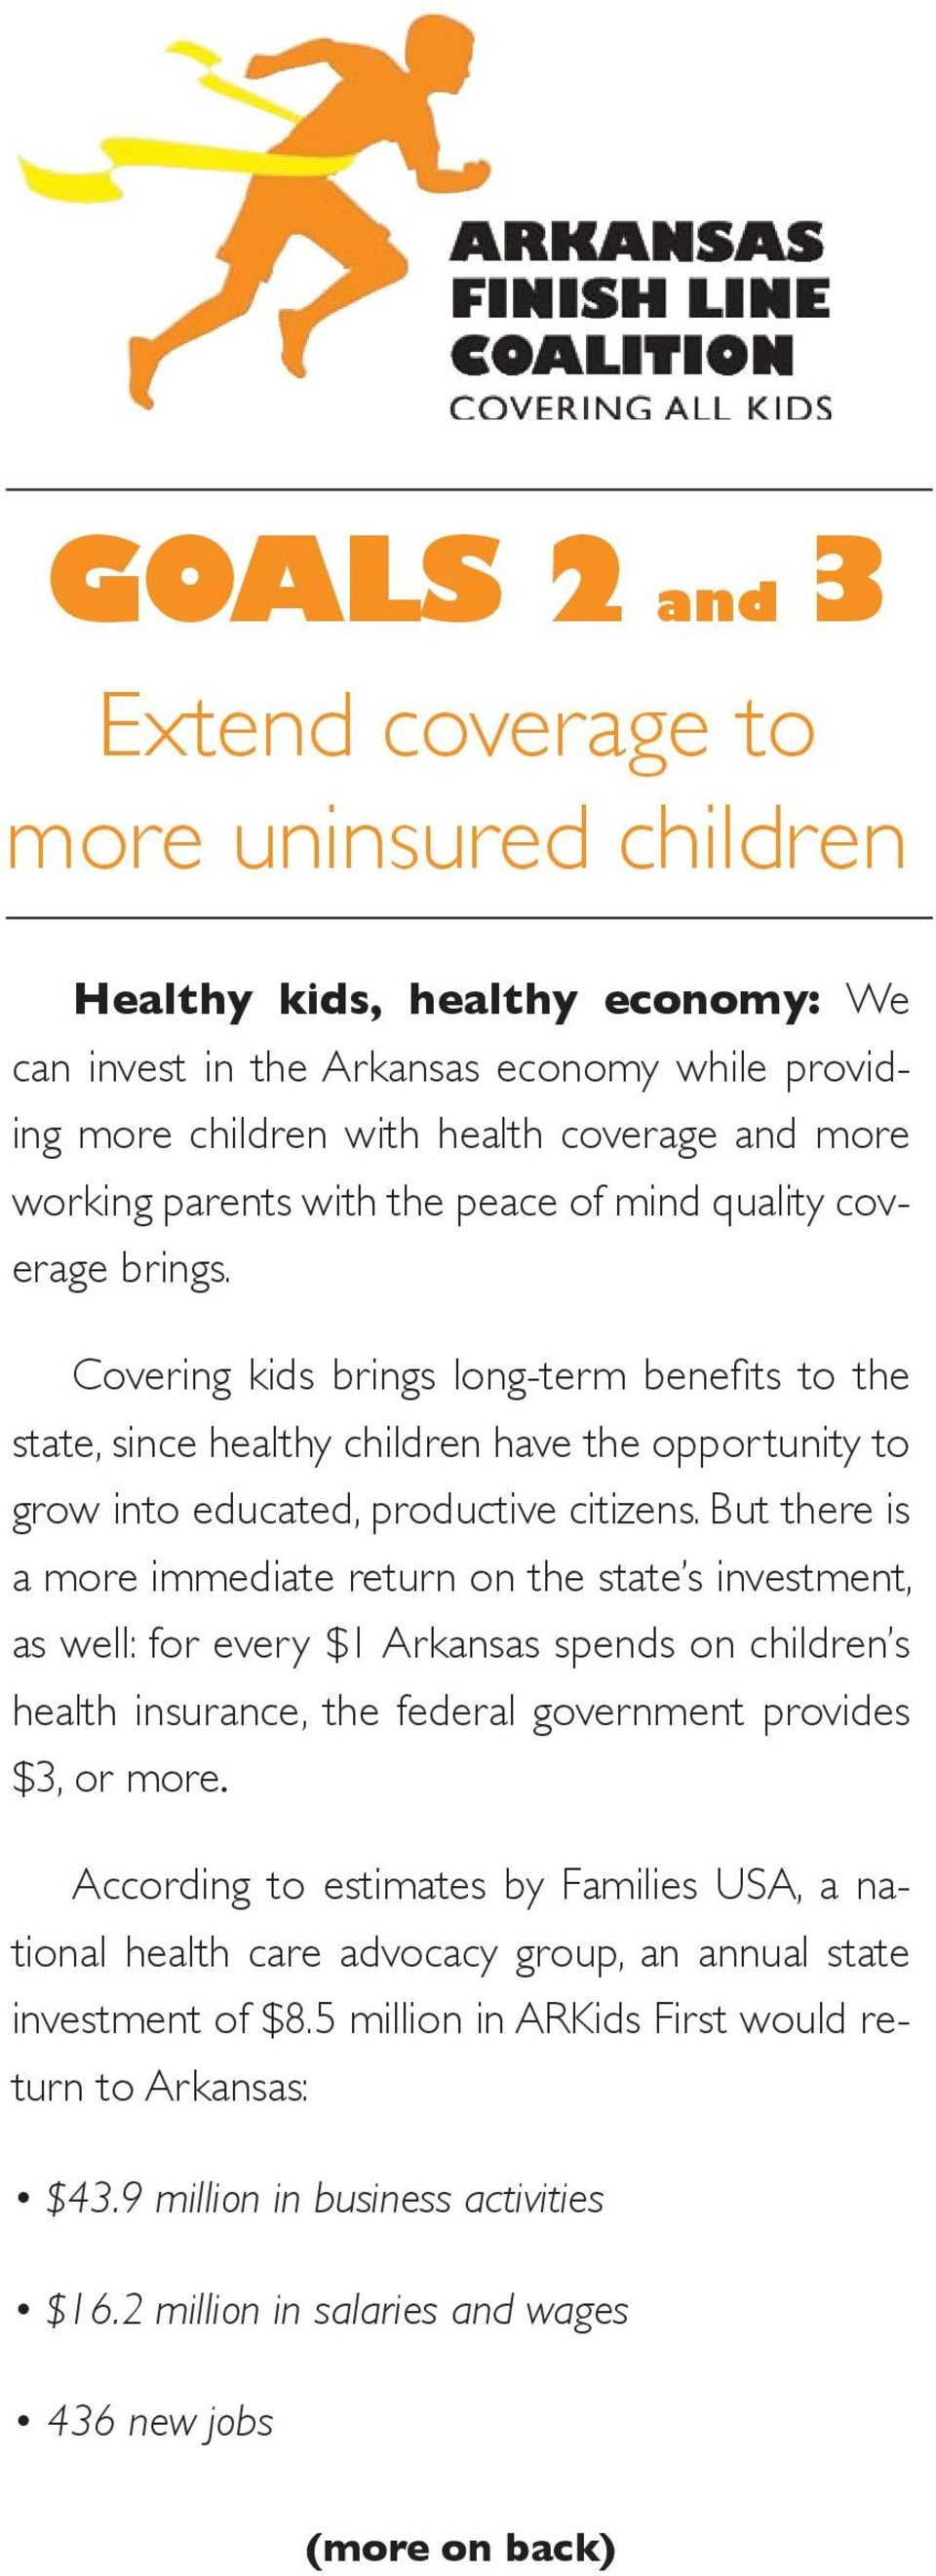 But there is a more immediate return on the state s investment, as well: for every $1 Arkansas spends on children s health insurance, the federal government provides $3, or more.